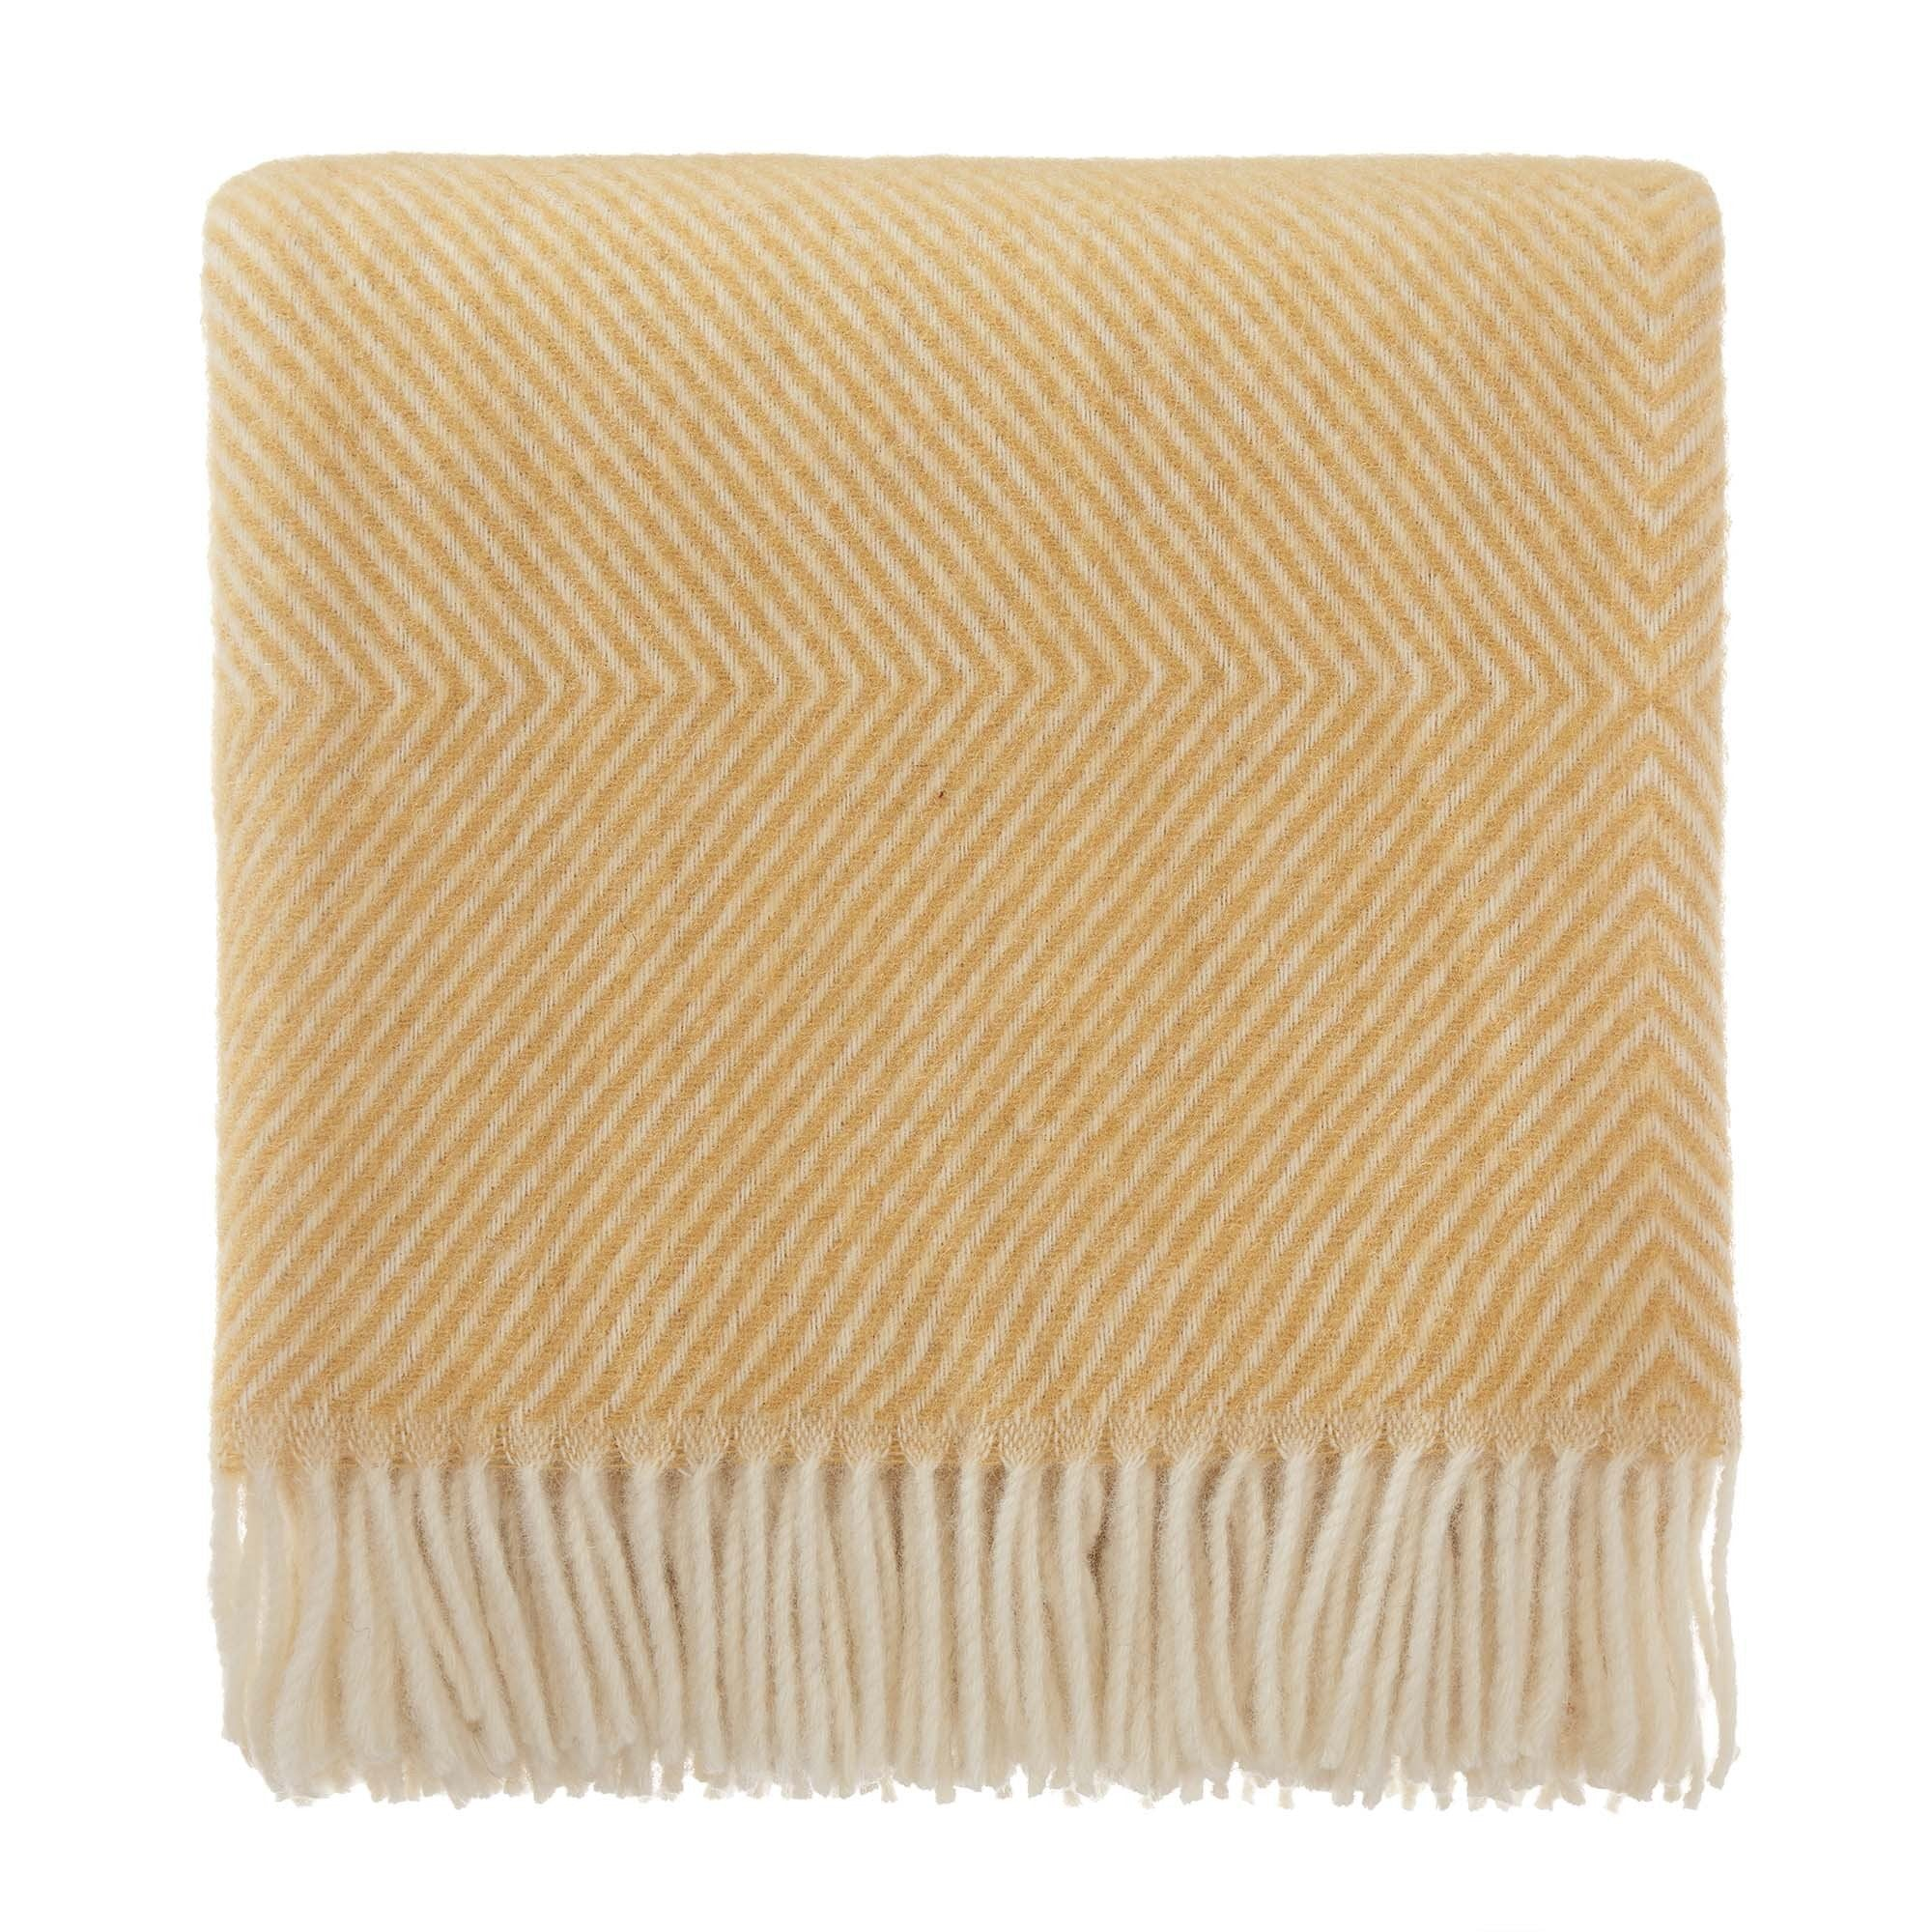 Gotland blanket, mustard & cream, 100% new wool